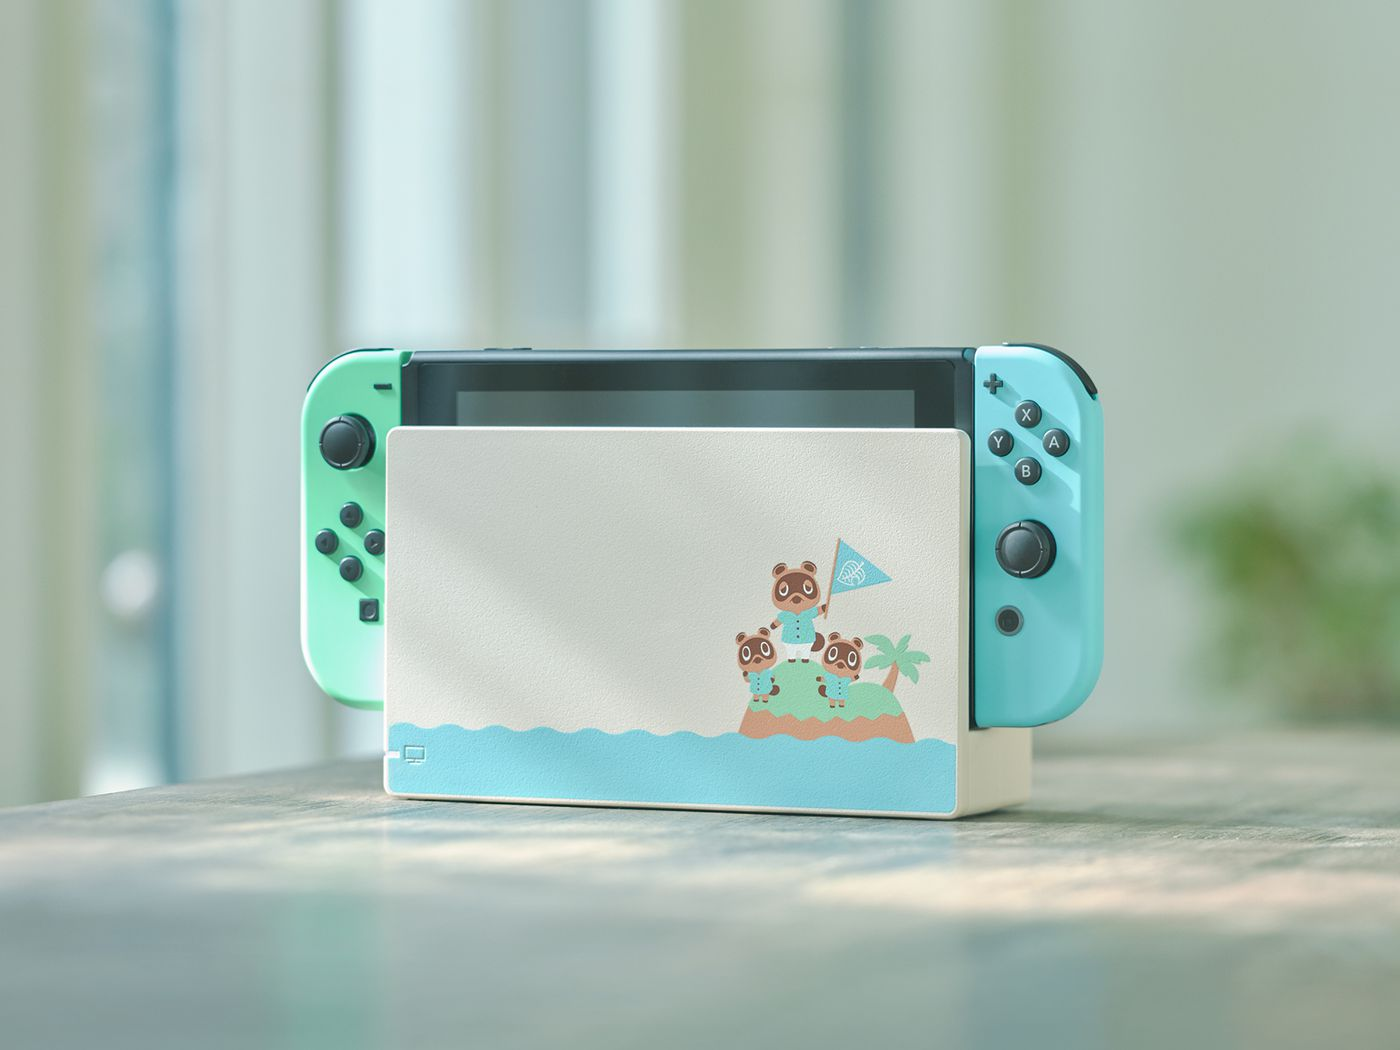 Nintendo S New Animal Crossing Themed Switch Looks Amazing The Verge